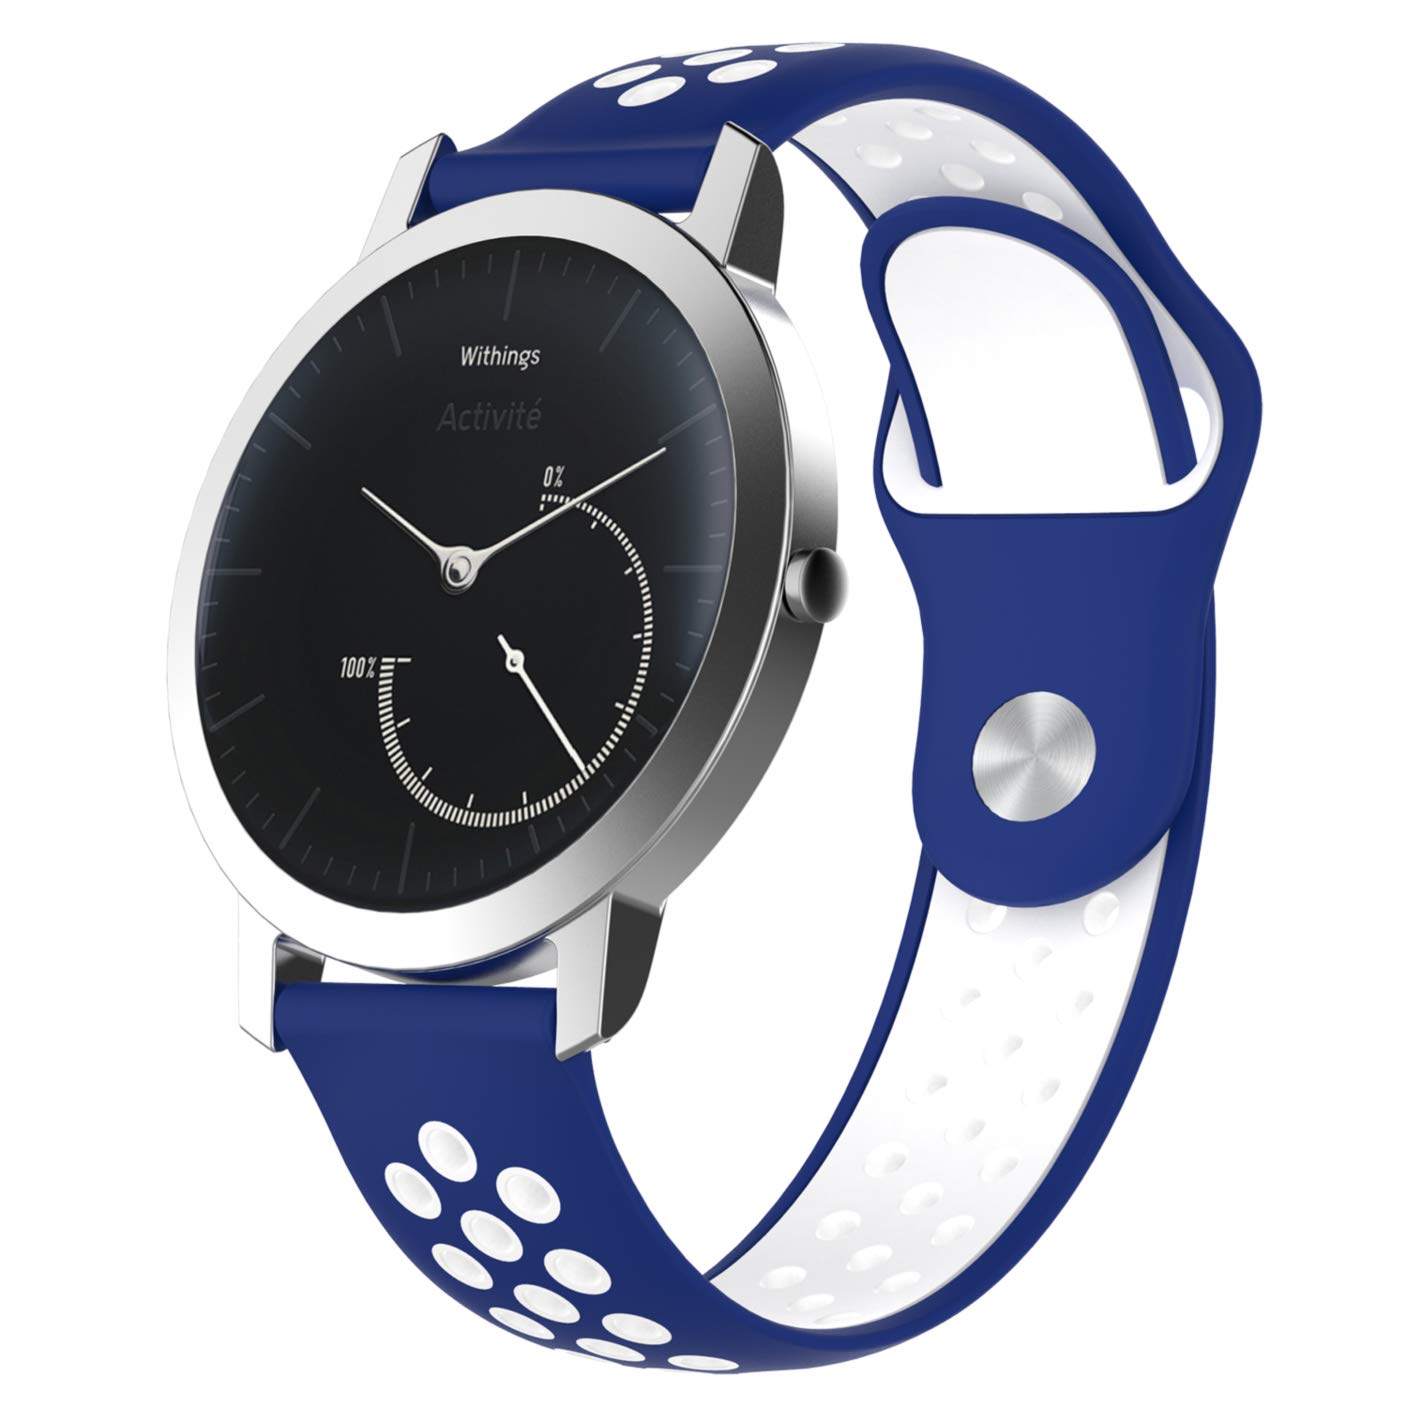 Amazon.com: ALEVEL Compatible Bands Replacement for Nokia ...